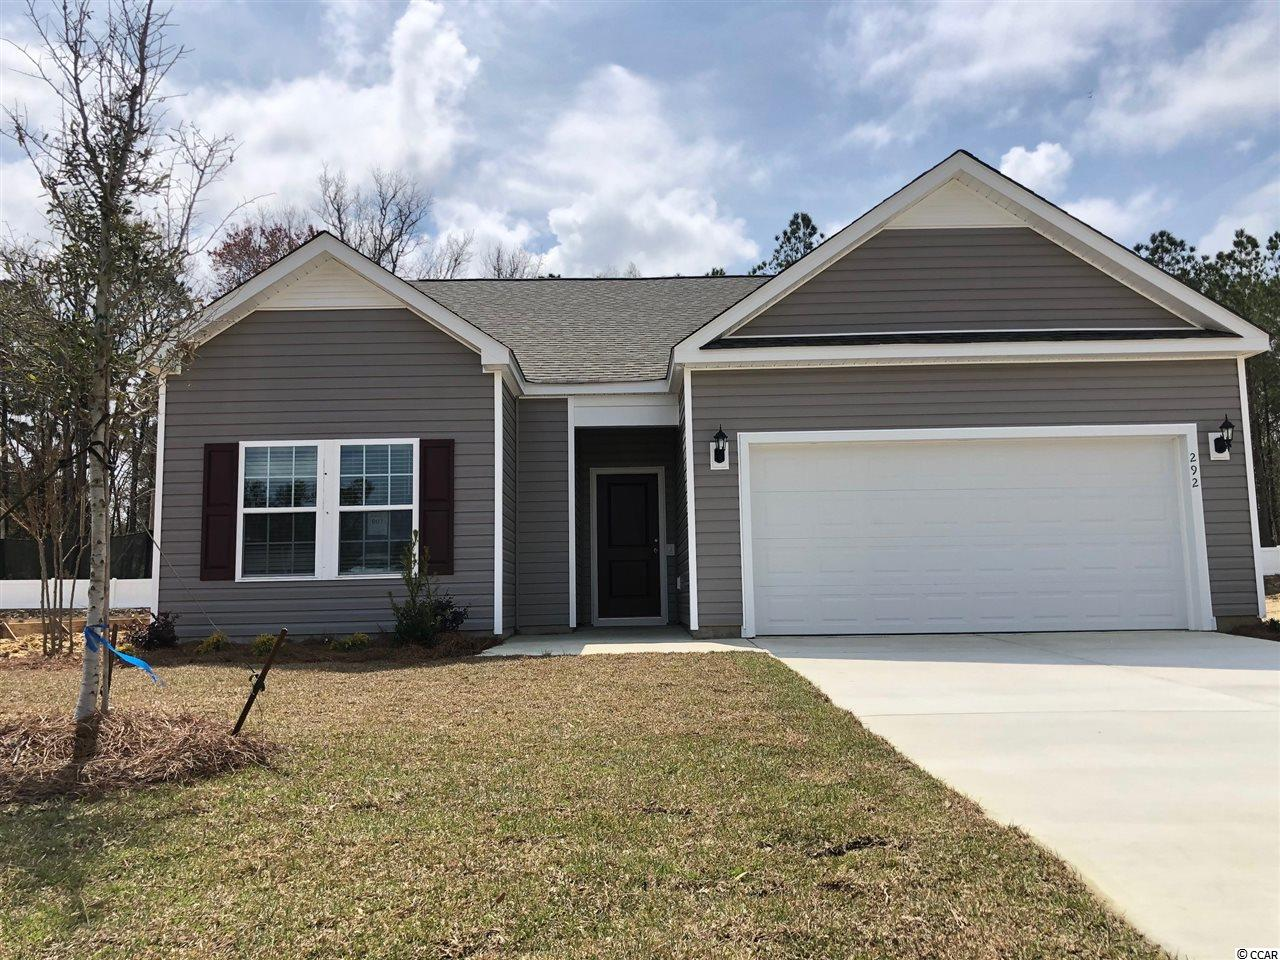 This is a to be built home, we are currently taking lot reservations for the new phase. Stop by our Model for Details.  Hampton Park is a natural Gas Community located on 707 near 544. Easy access to 31. We are located minutes from beaches, shopping, golf, restaurants, medical facilities and more. This is a small 80 home community that will feature lots that view the pond, as well as backyards that have wooded views. Sidewalks, pool. Fencing allowed.